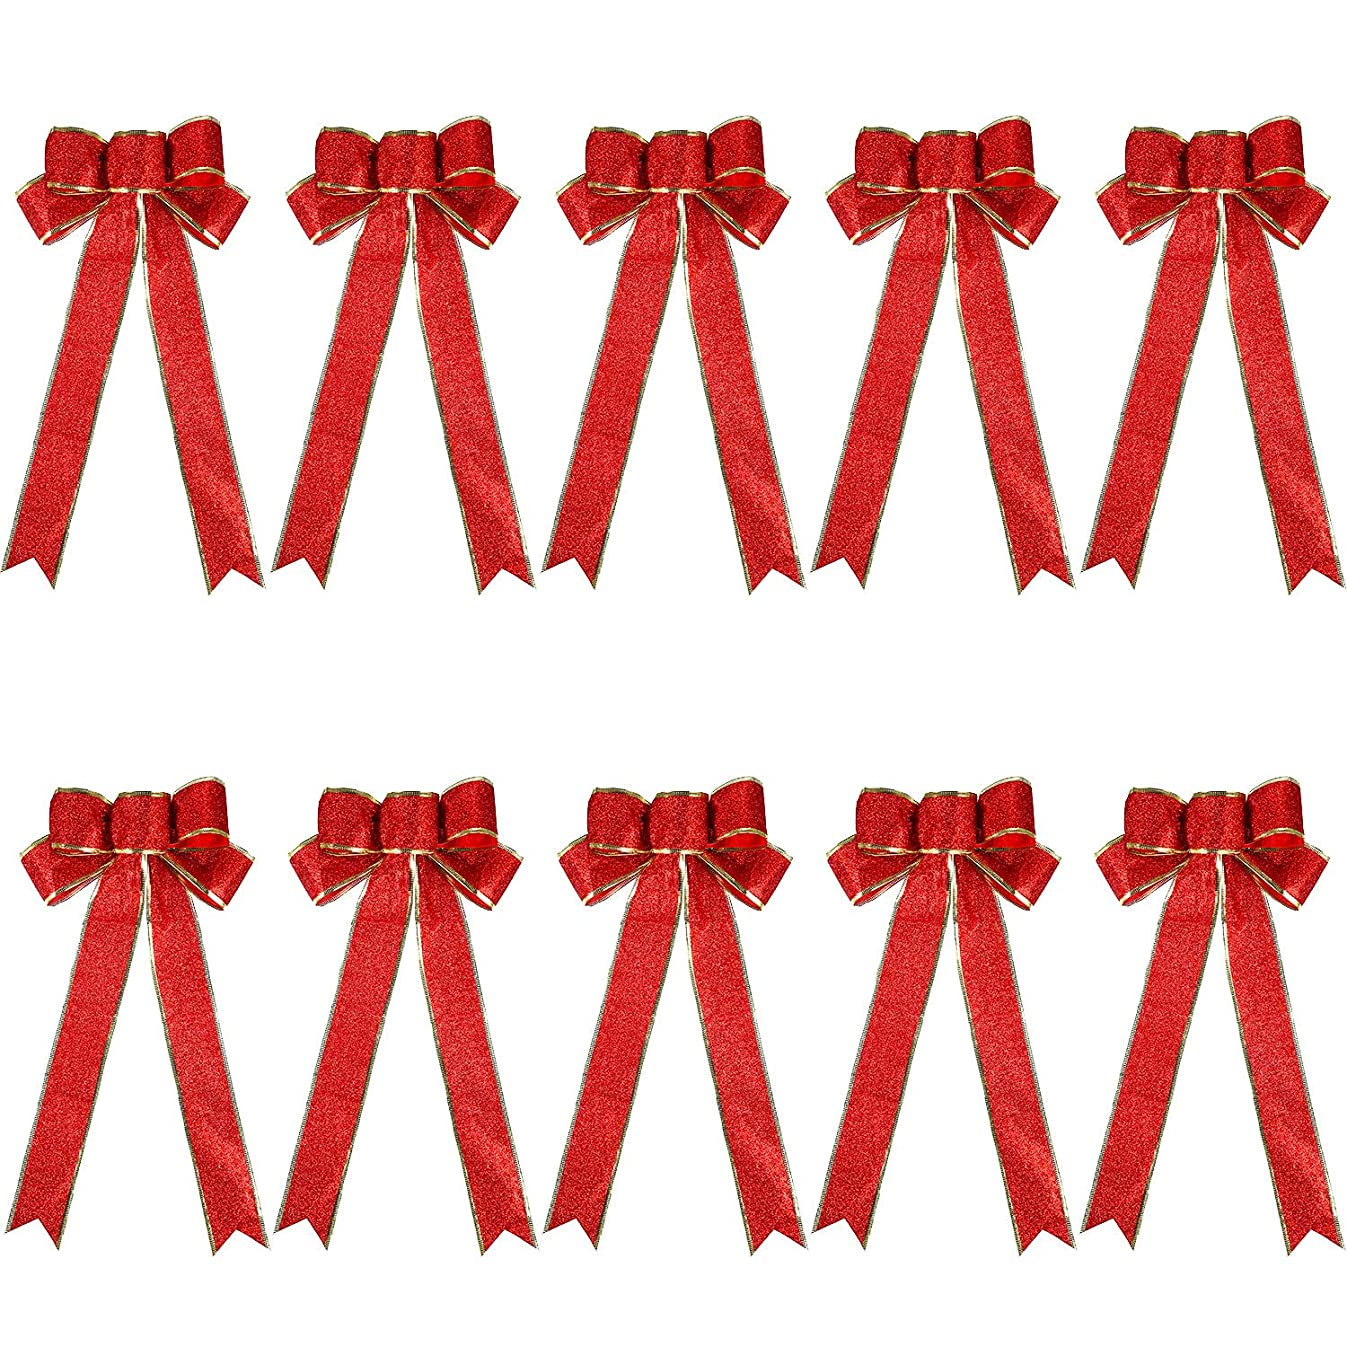 Tatuo 10 Pack Glitter Christmas Bow 7.8 x 17 Inch Holiday Bows Large Bow Home Decorations (Red Gold)